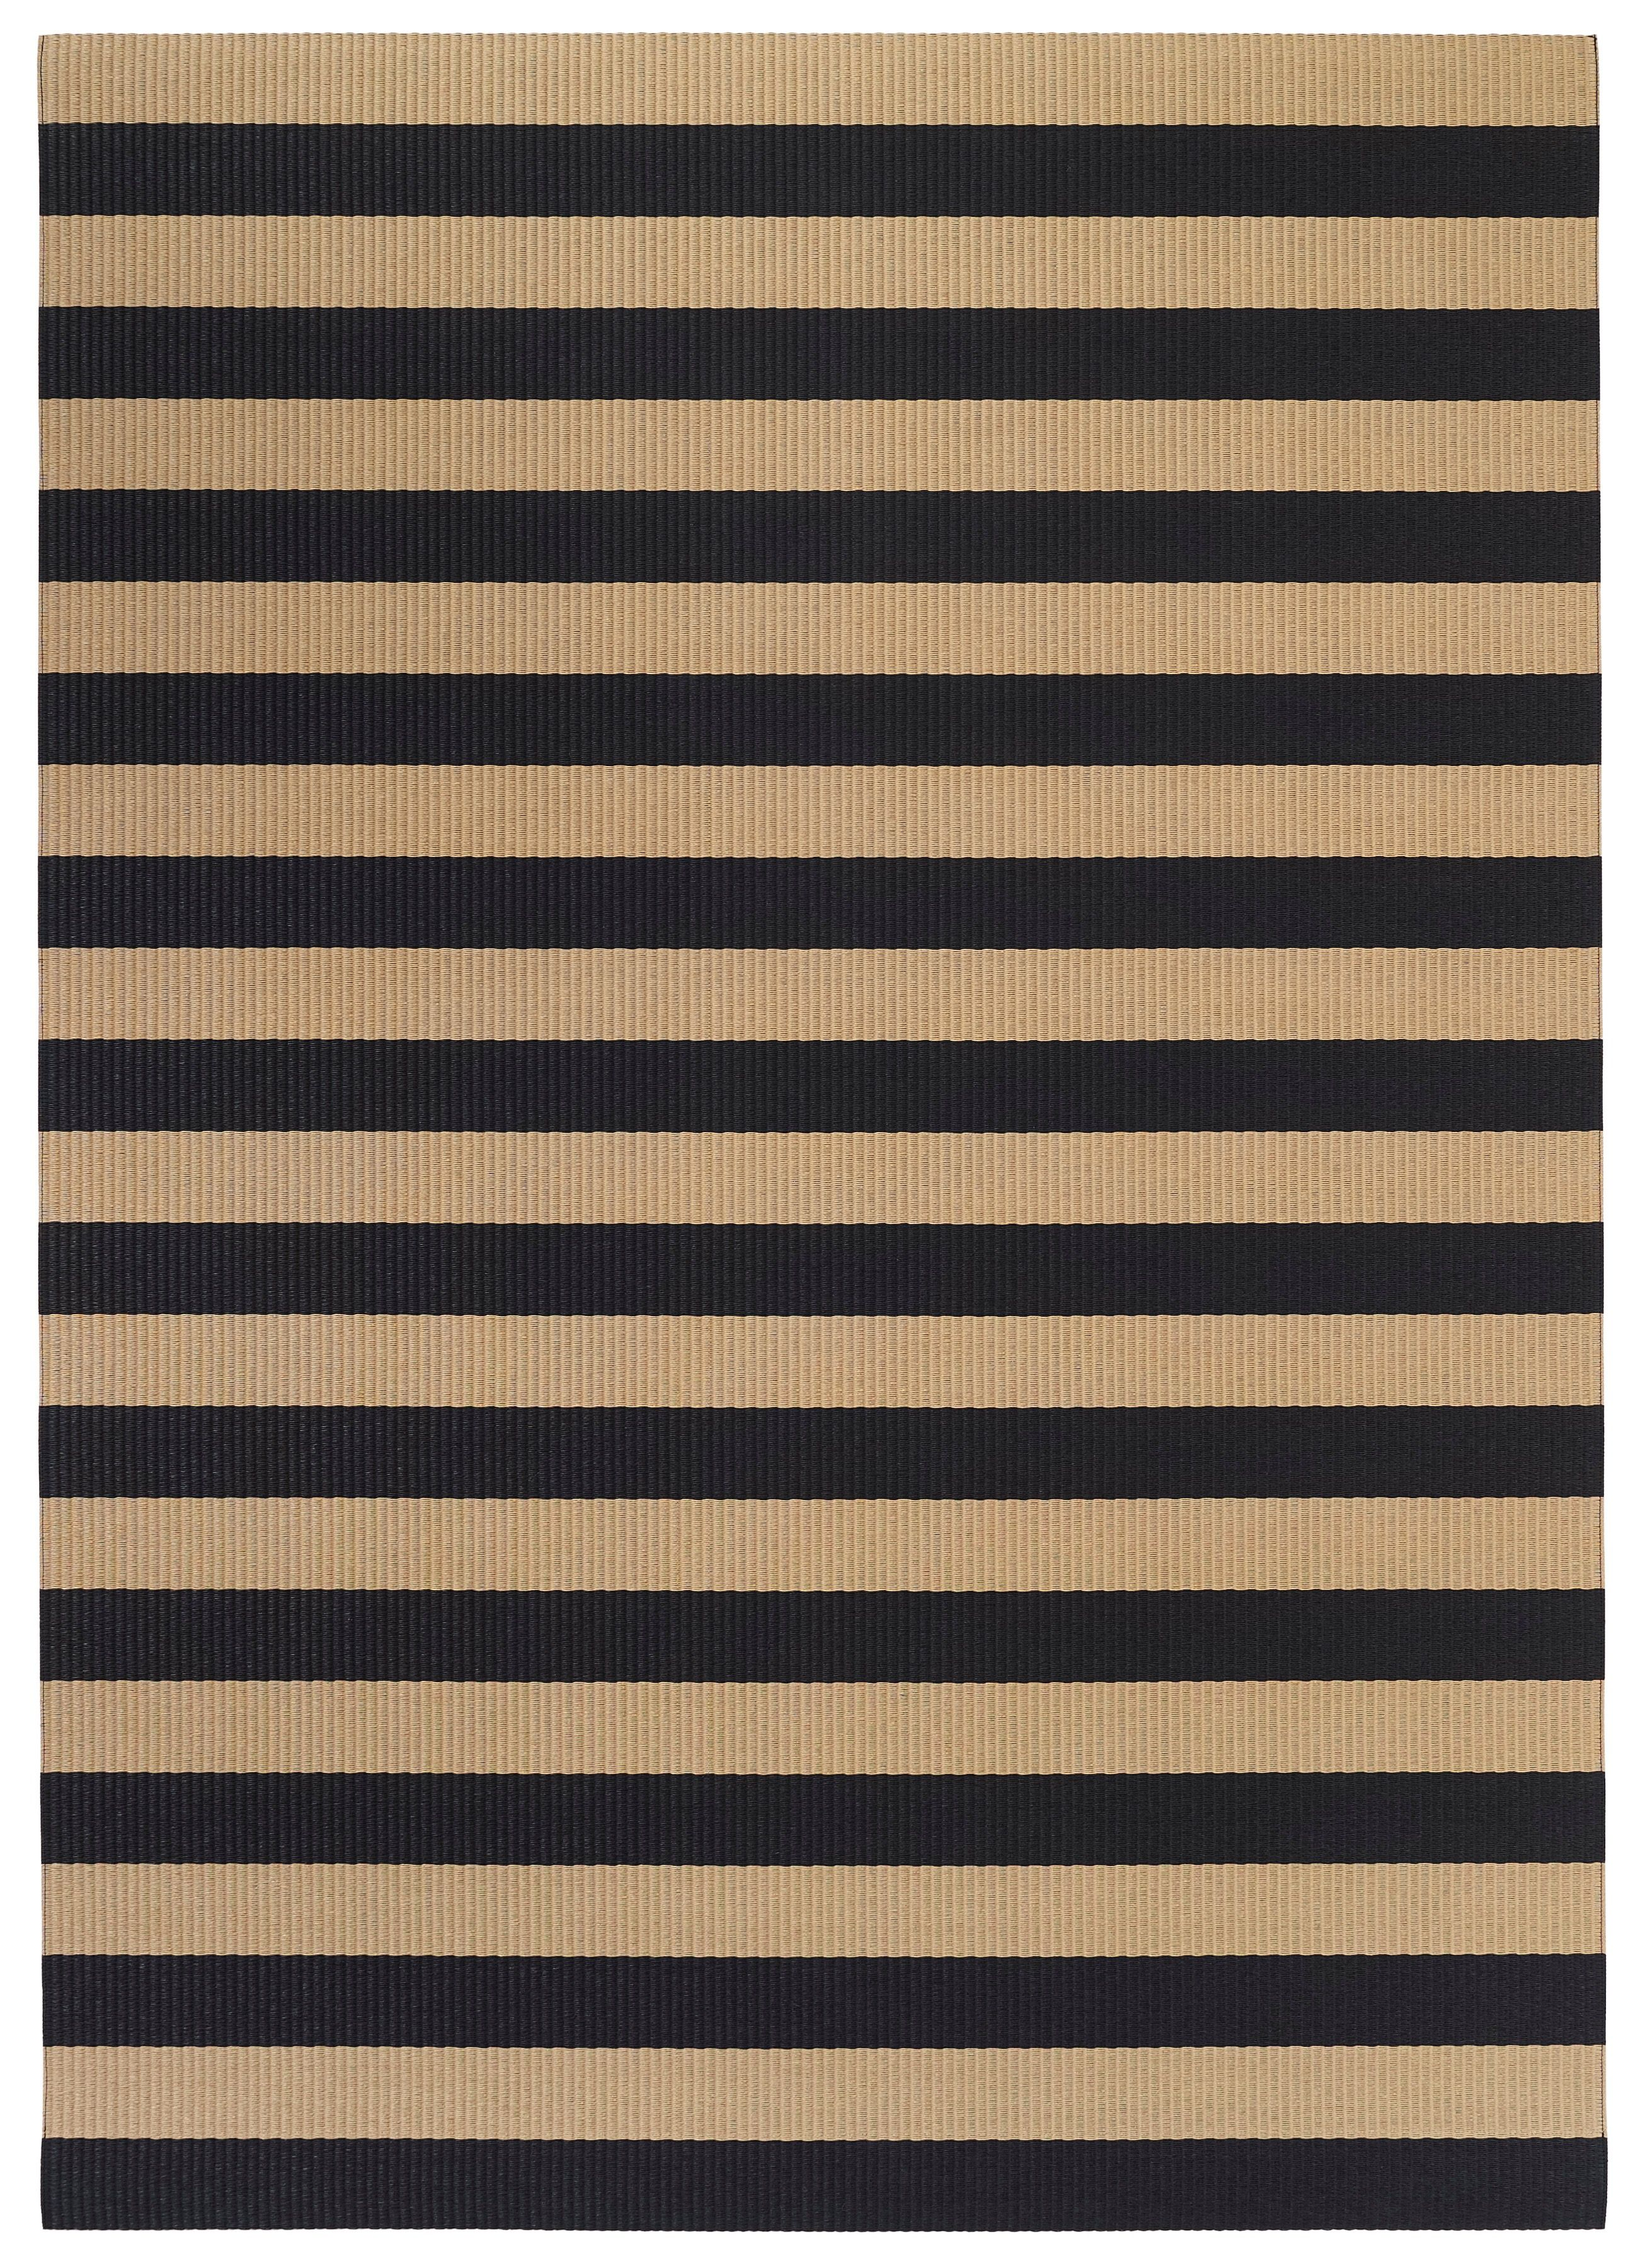 Woodnotes Teppiche Woodnotes Big Stripe Paper Yarn Carpet Col Natural Black Natural